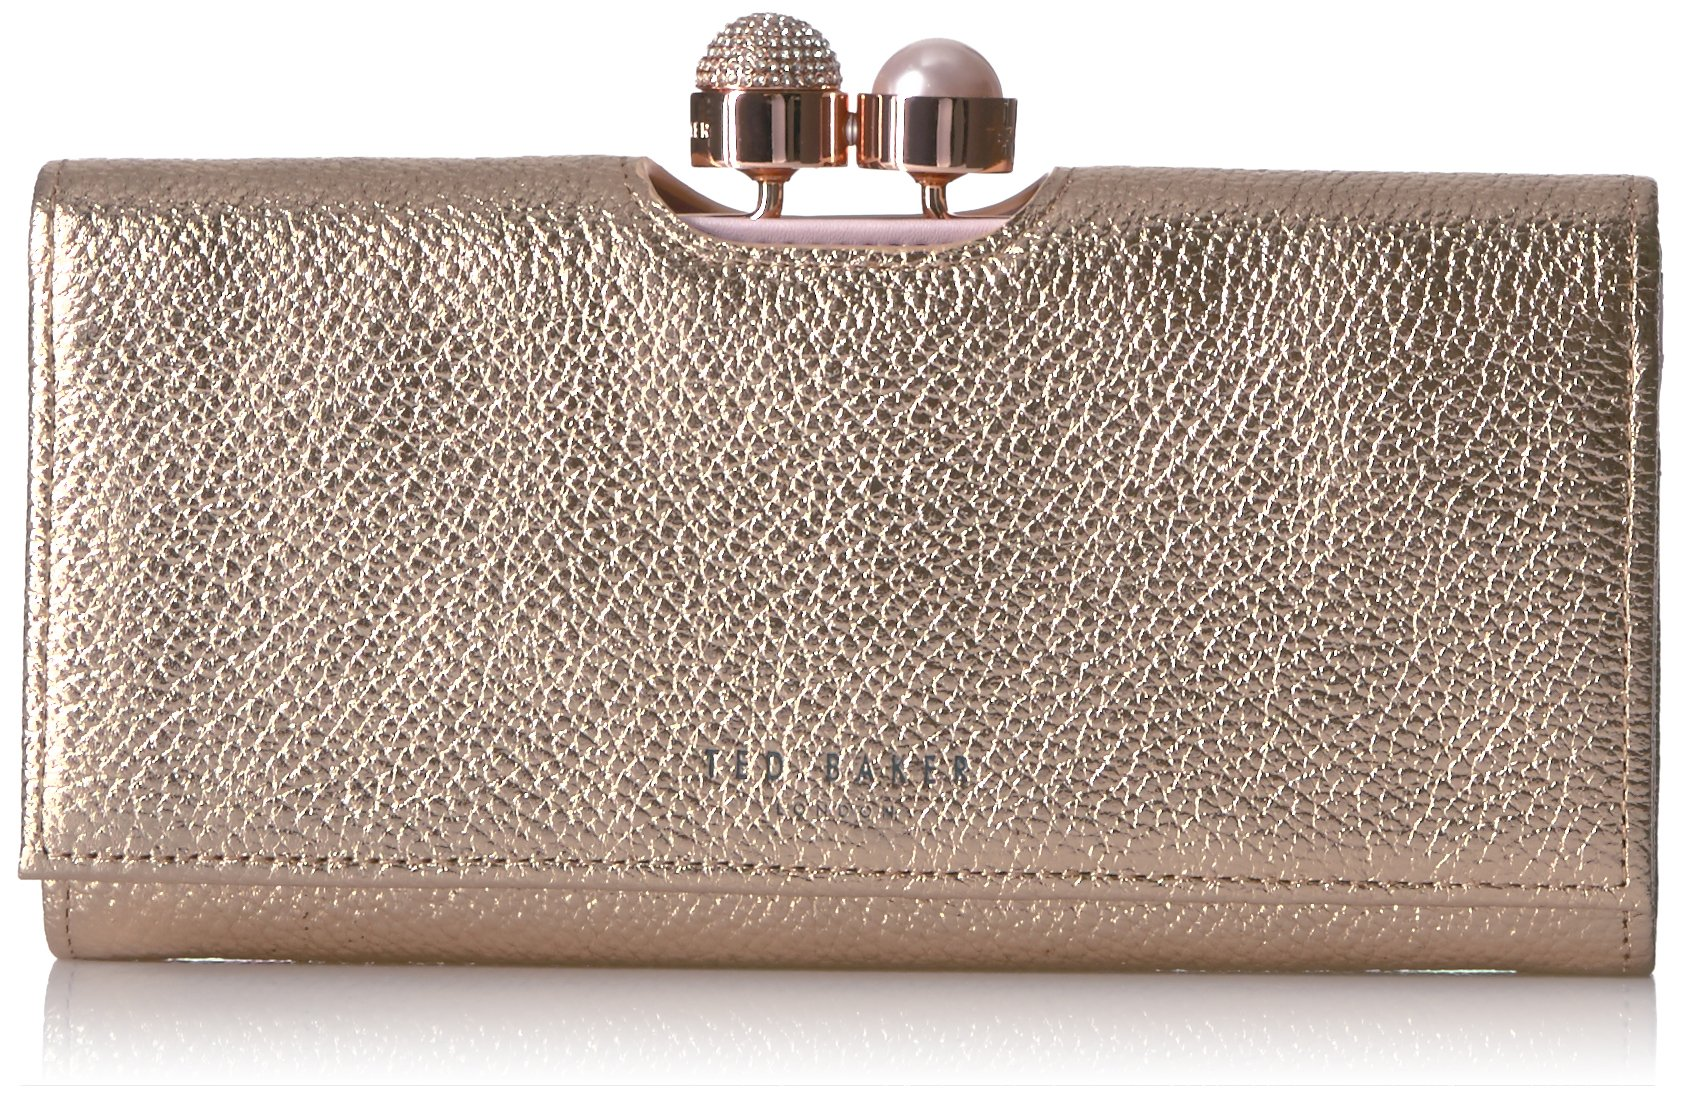 Ted Baker Marta Wallet,Crystal Pearl Bobble Matinee,rosegold,One Size